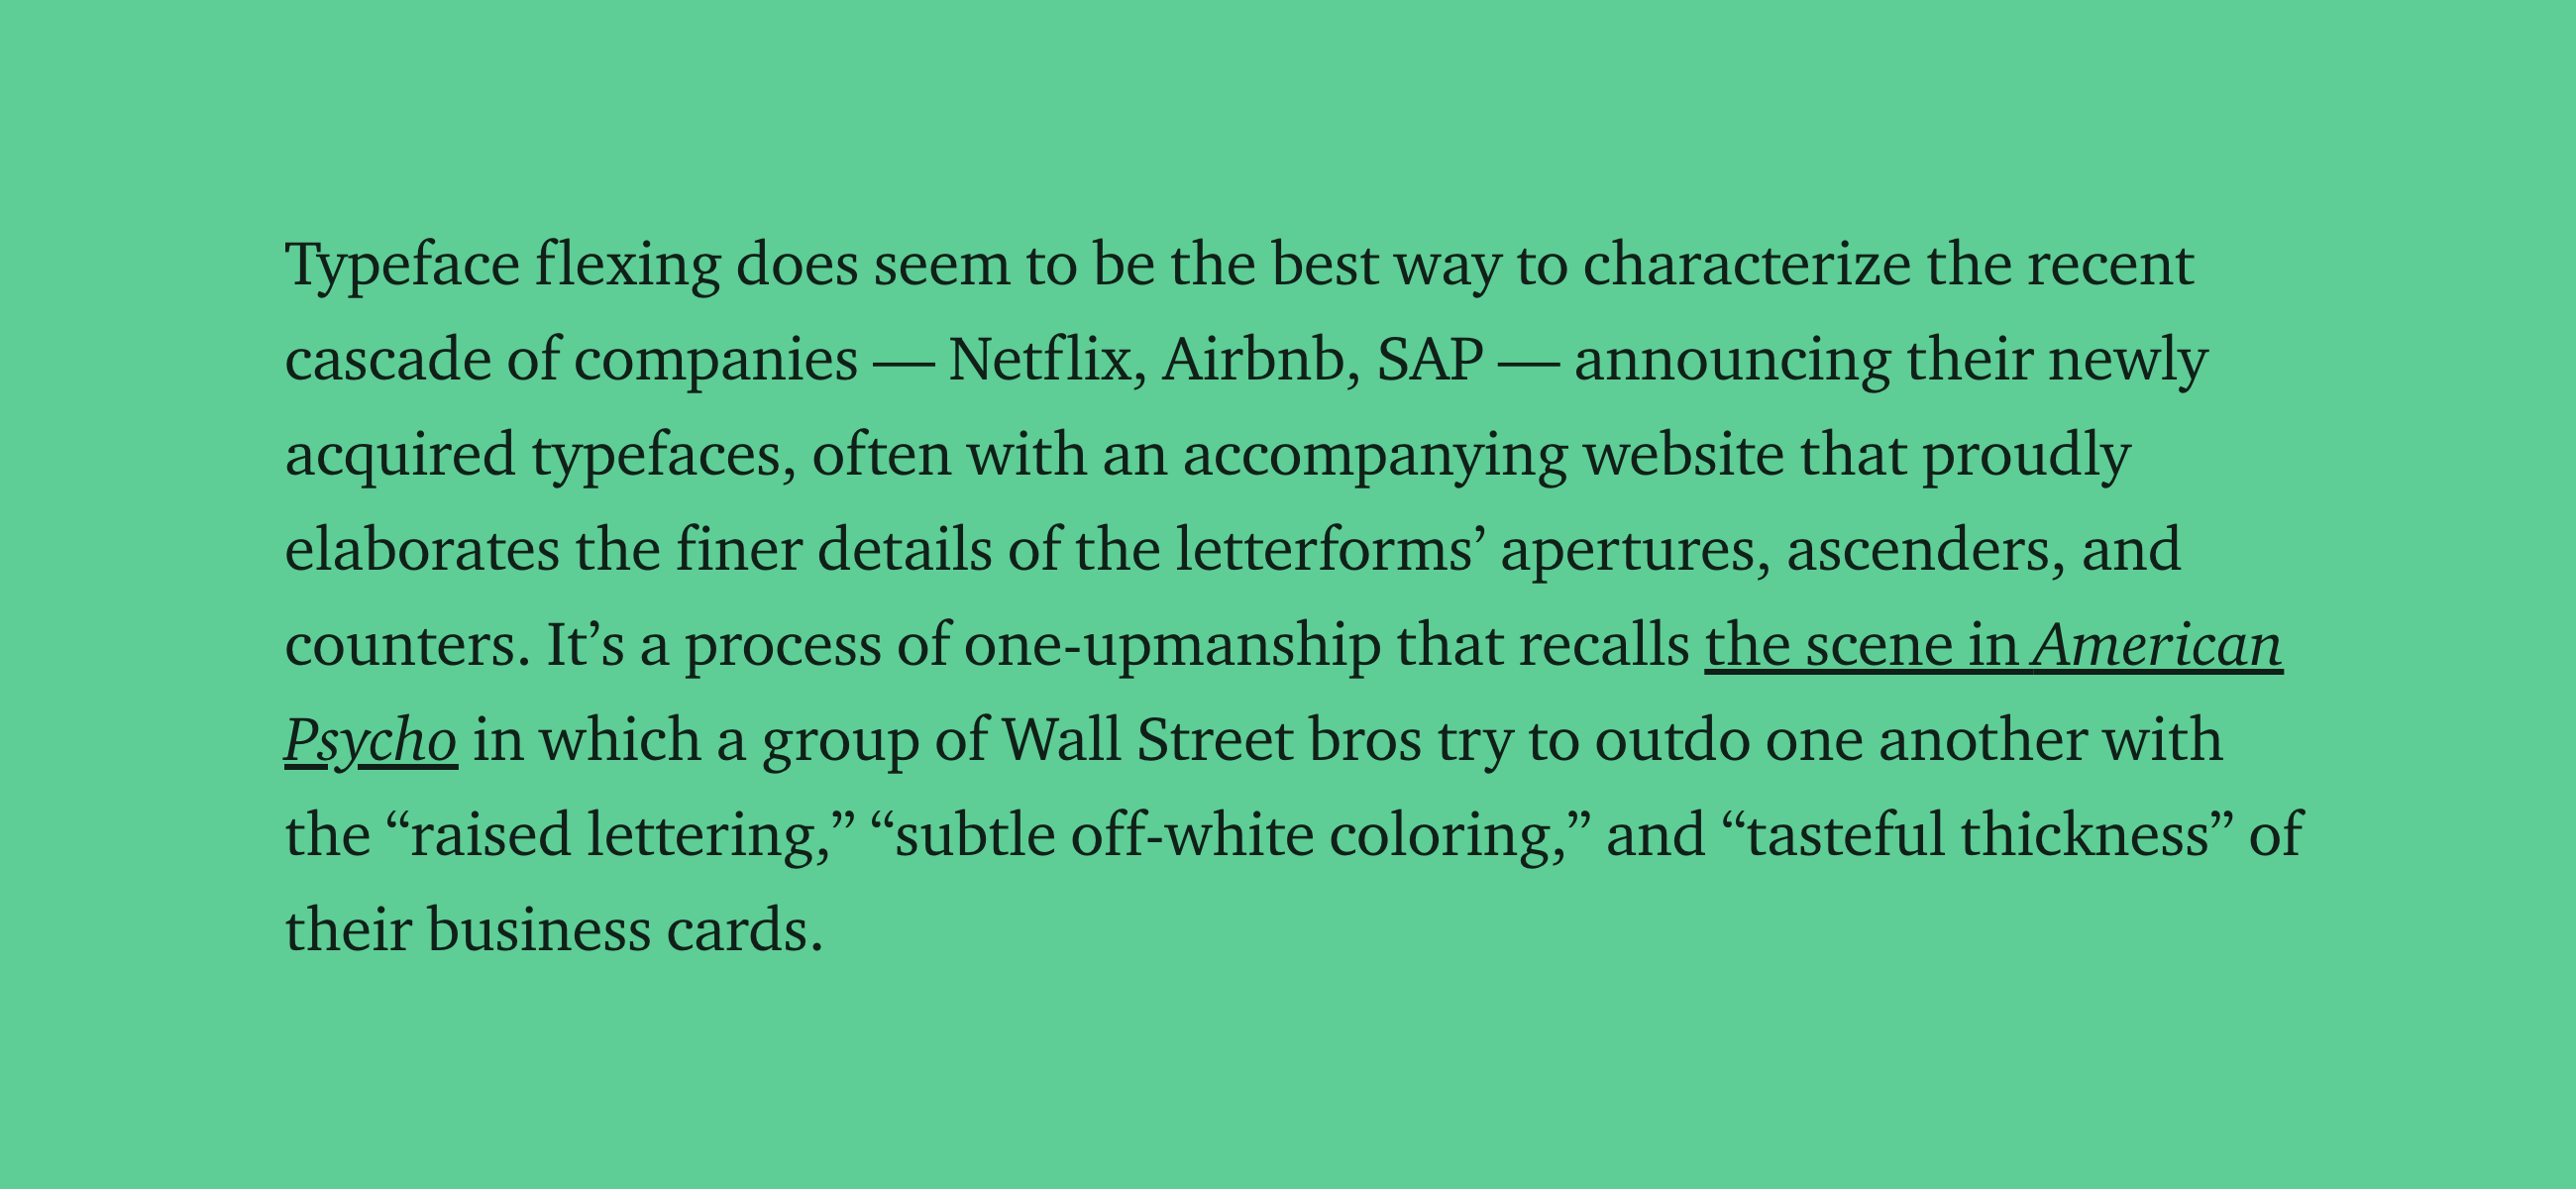 On the Rise of Proprietary Corporate Typefaces